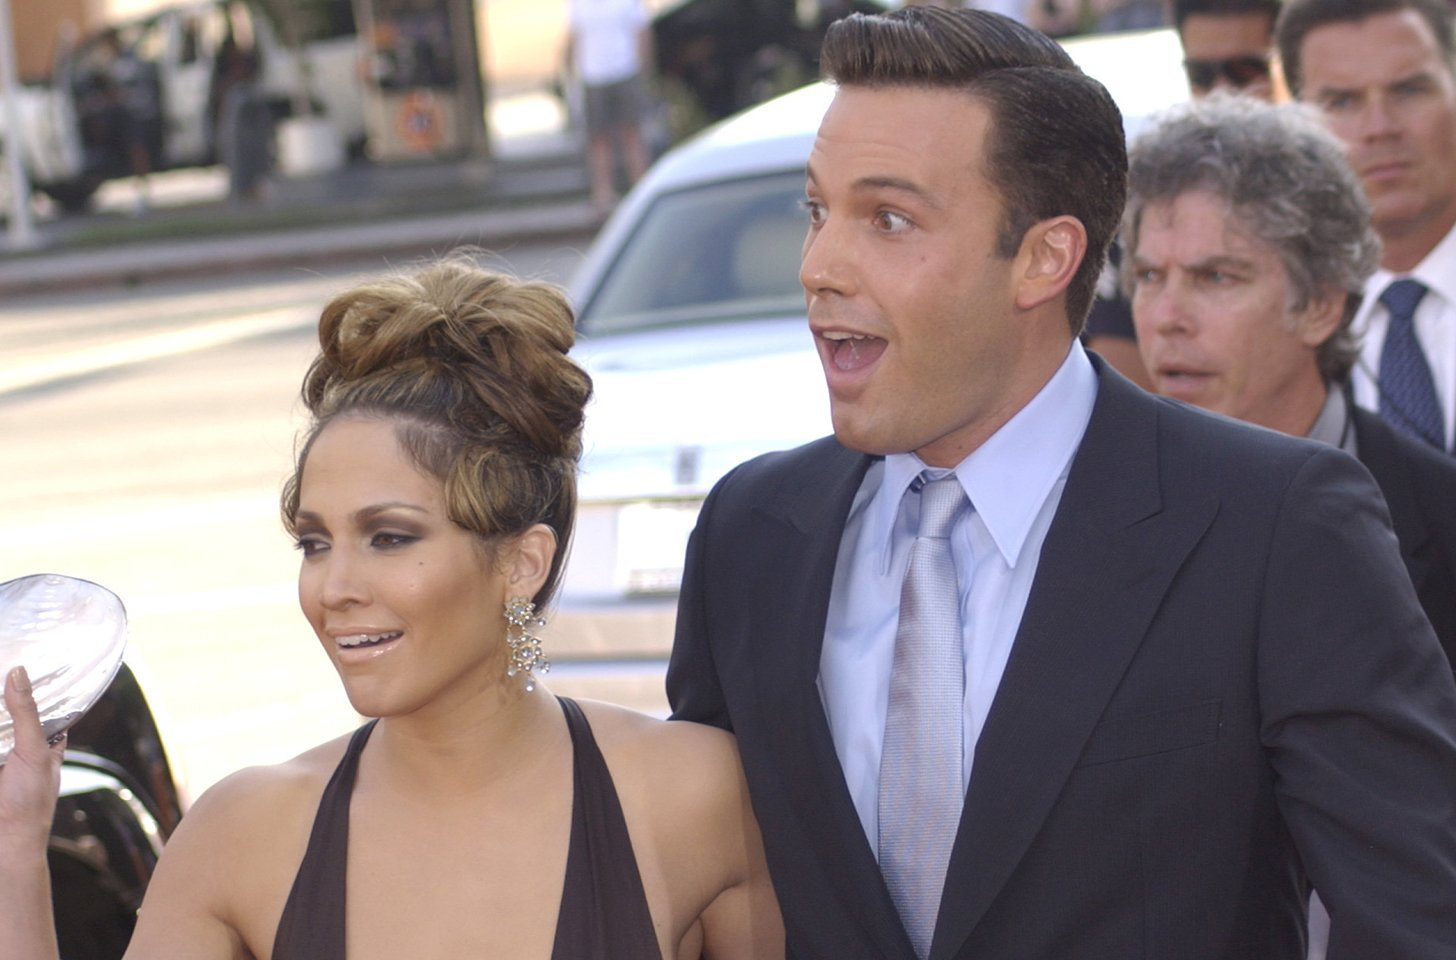 The Truth About Ben Affleck And Jennifer Lopez's Reunion